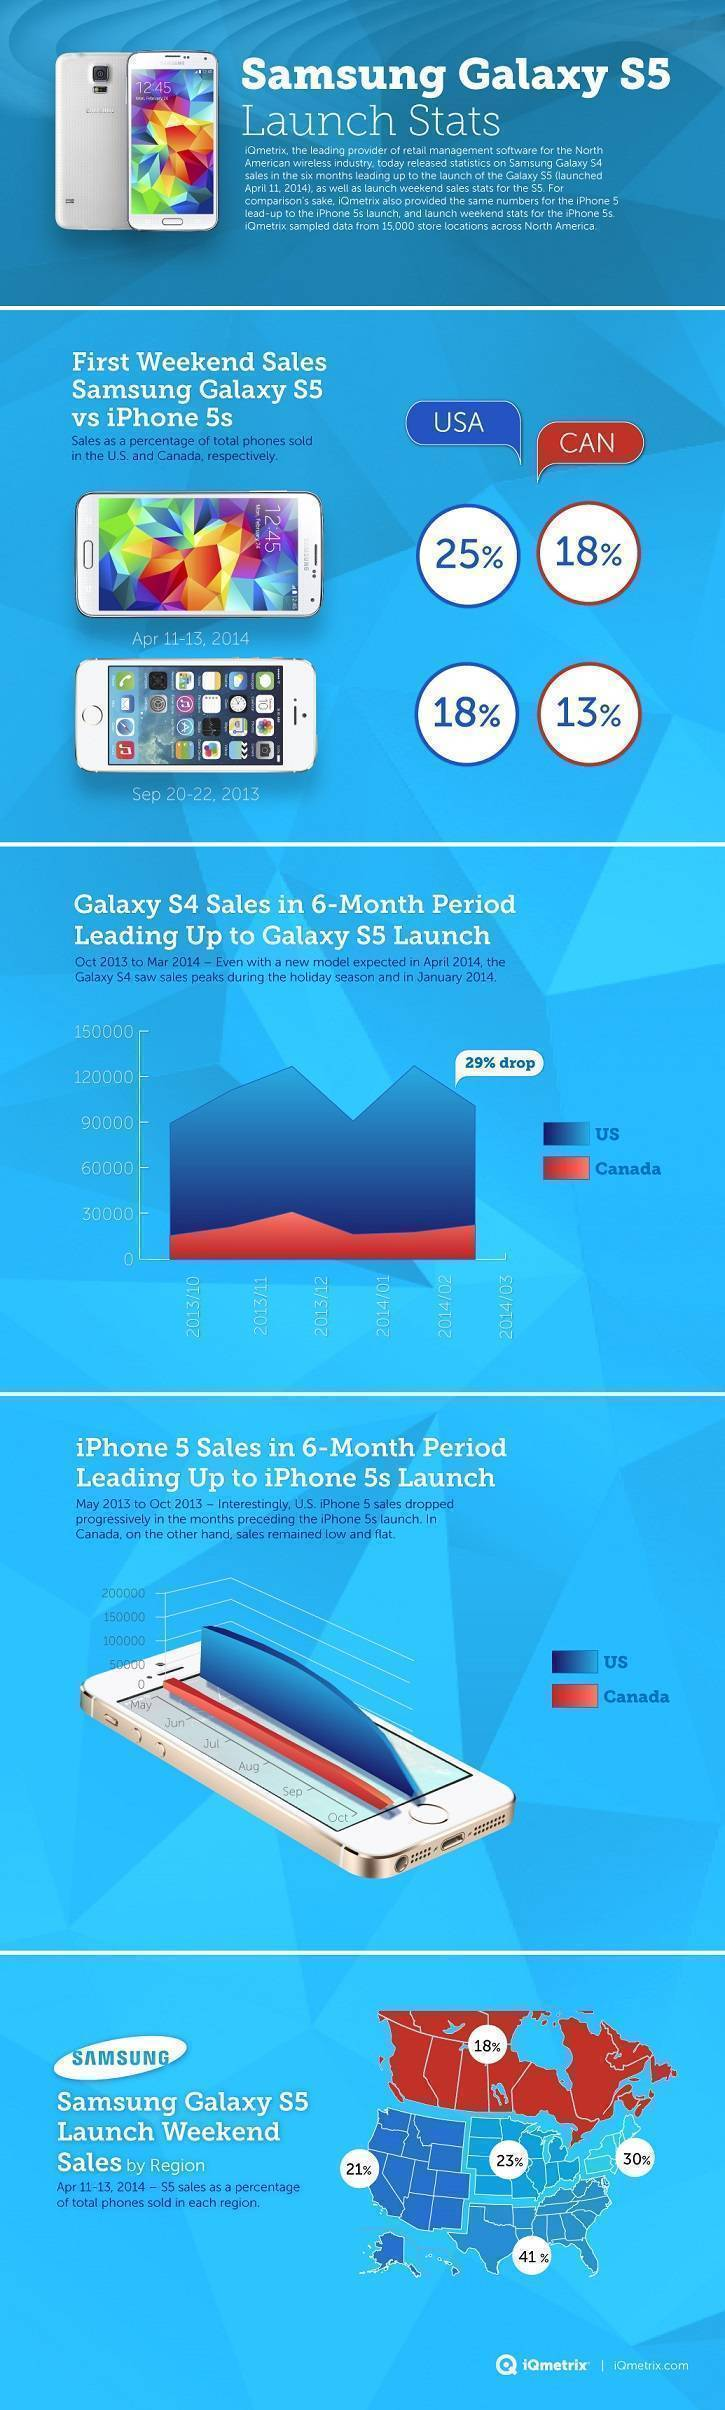 samsung galaxy s5 vs iphone 5s infografica